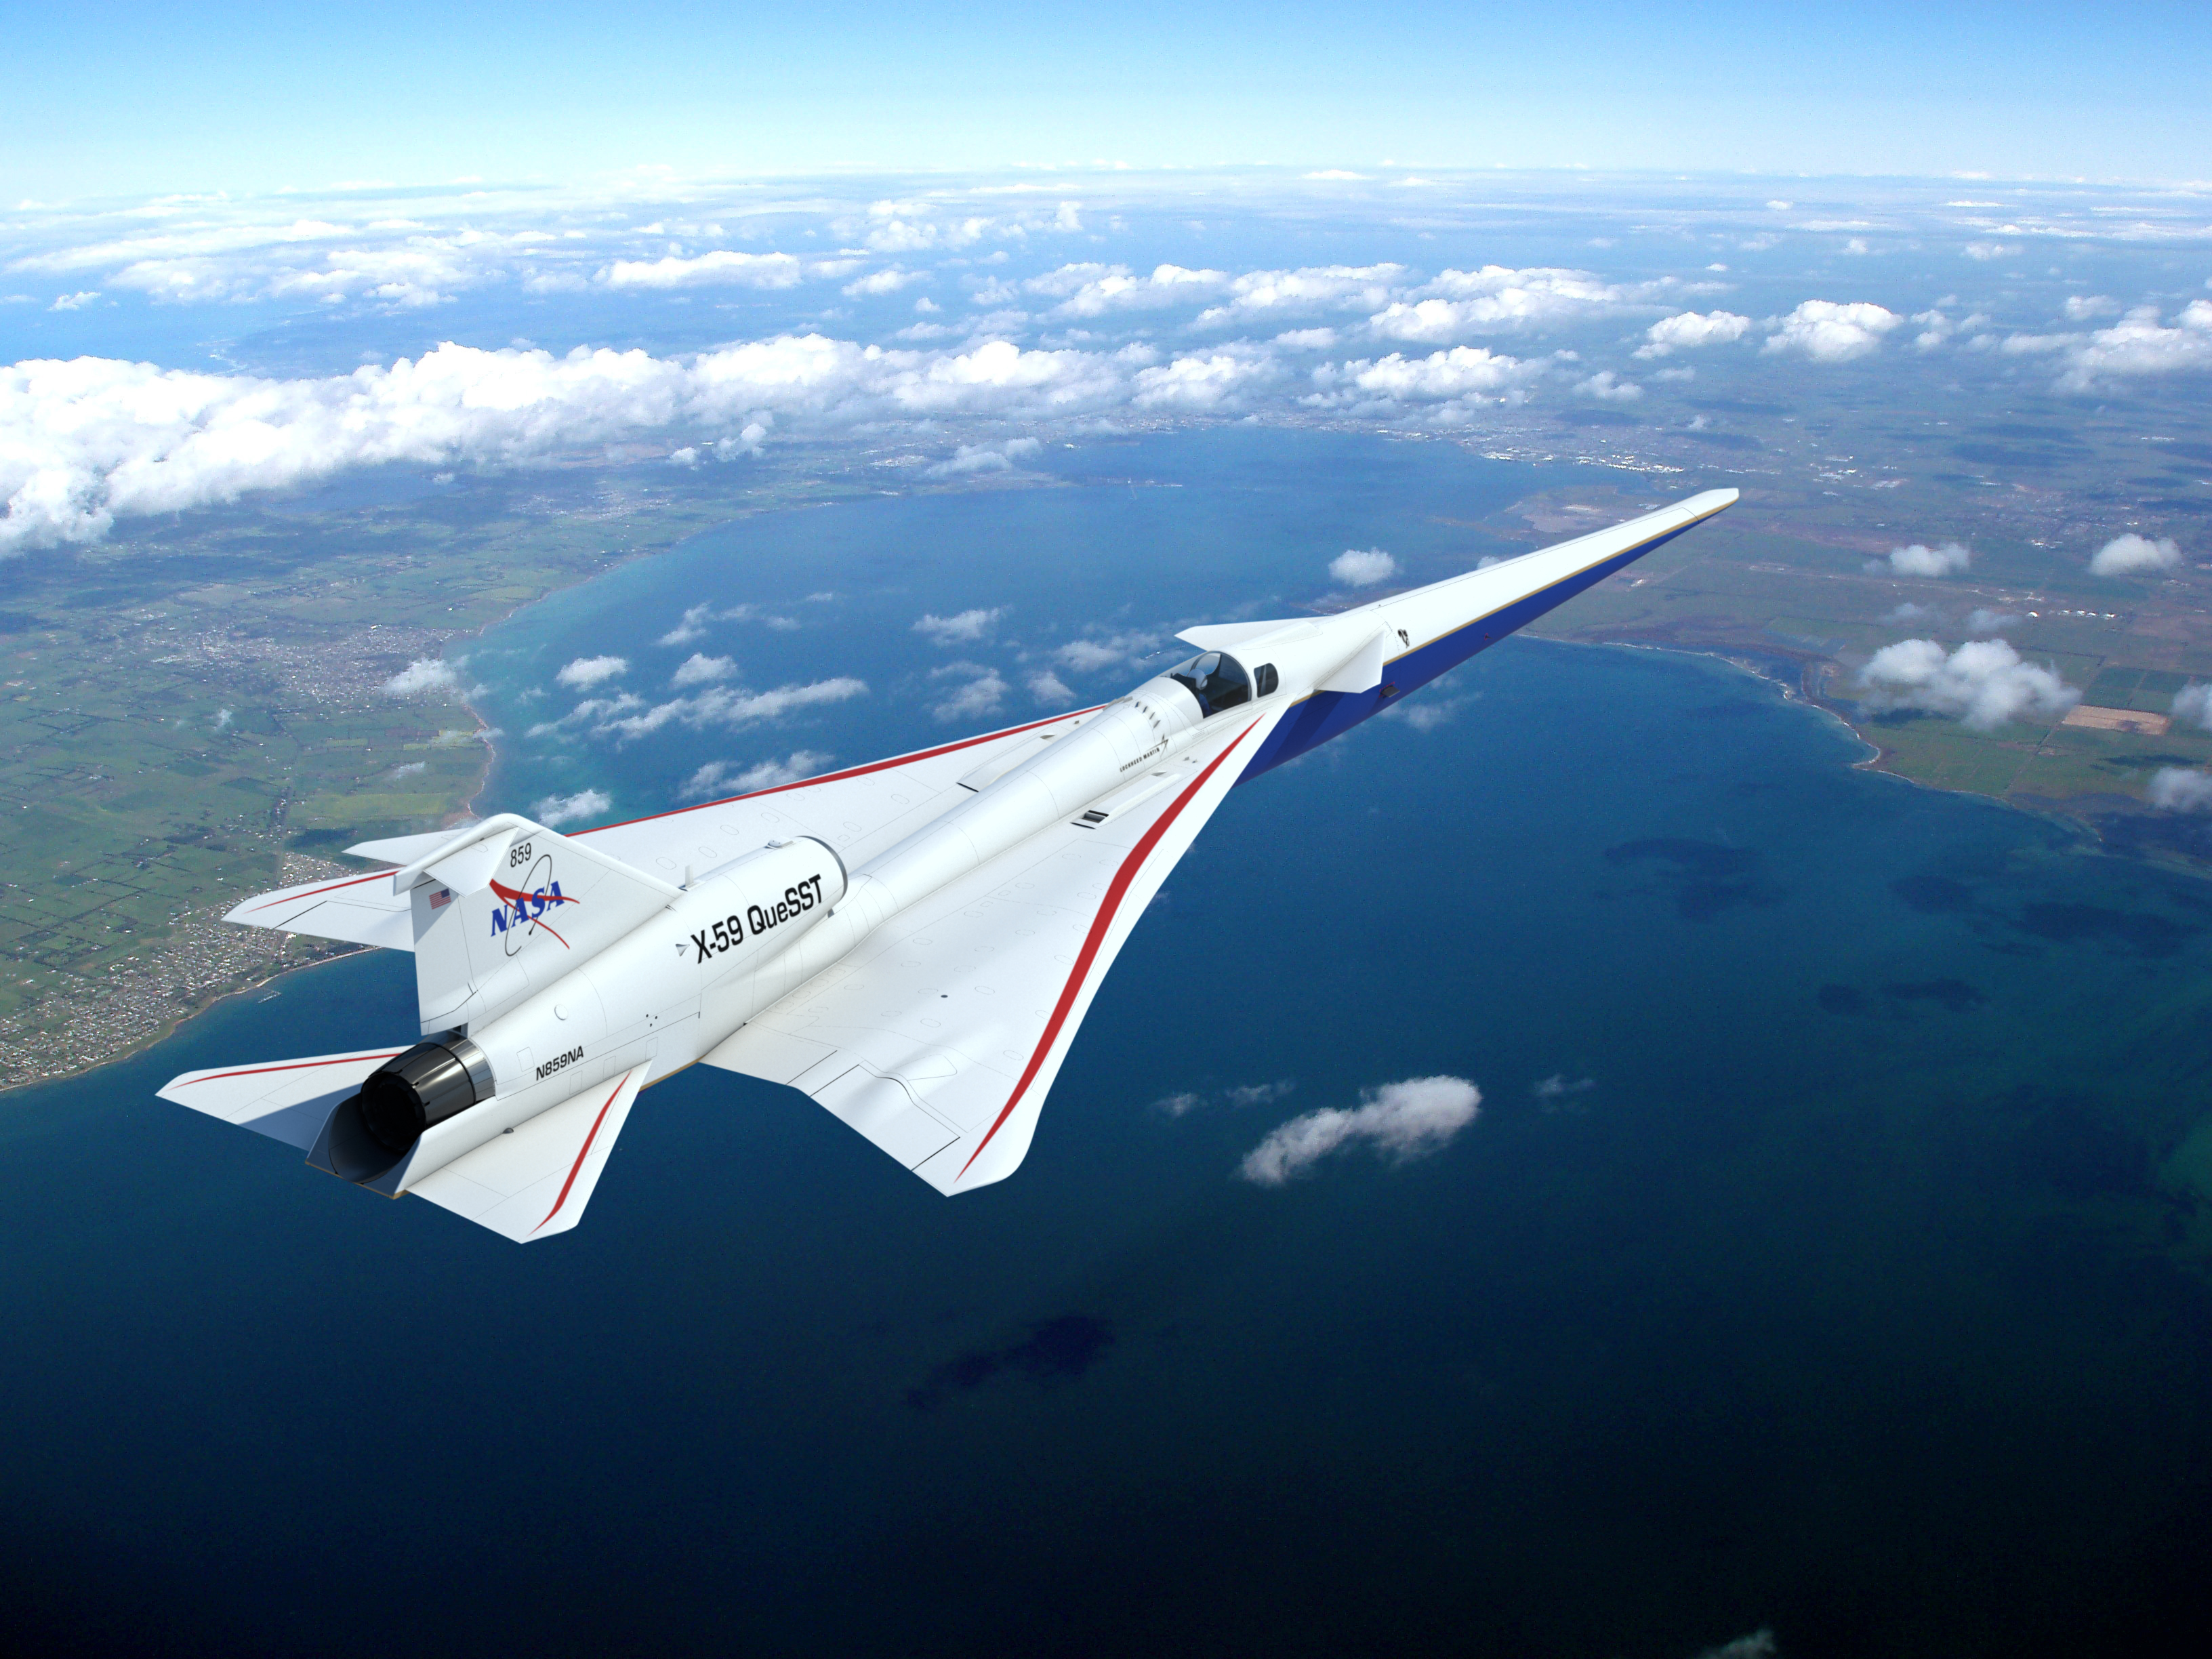 NASA Selects Contractor for Quiet Supersonic Flight Neighborhood Testing